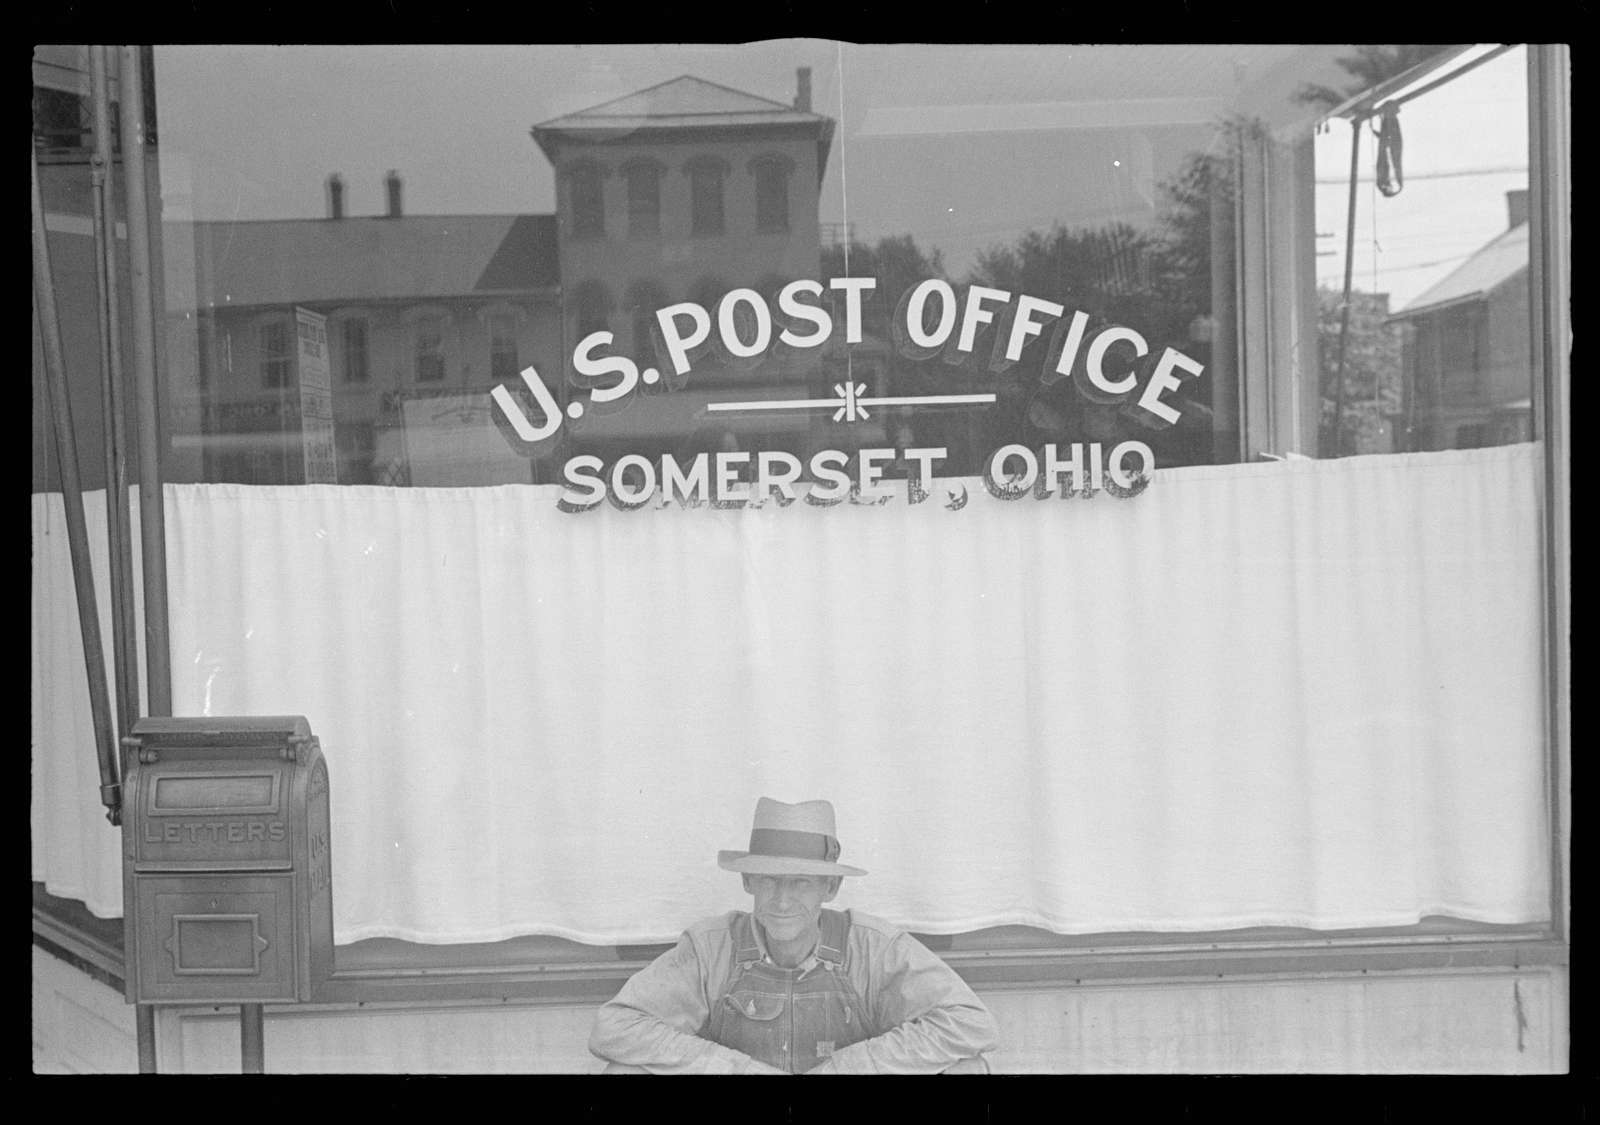 Post office, Sommerset, Ohio